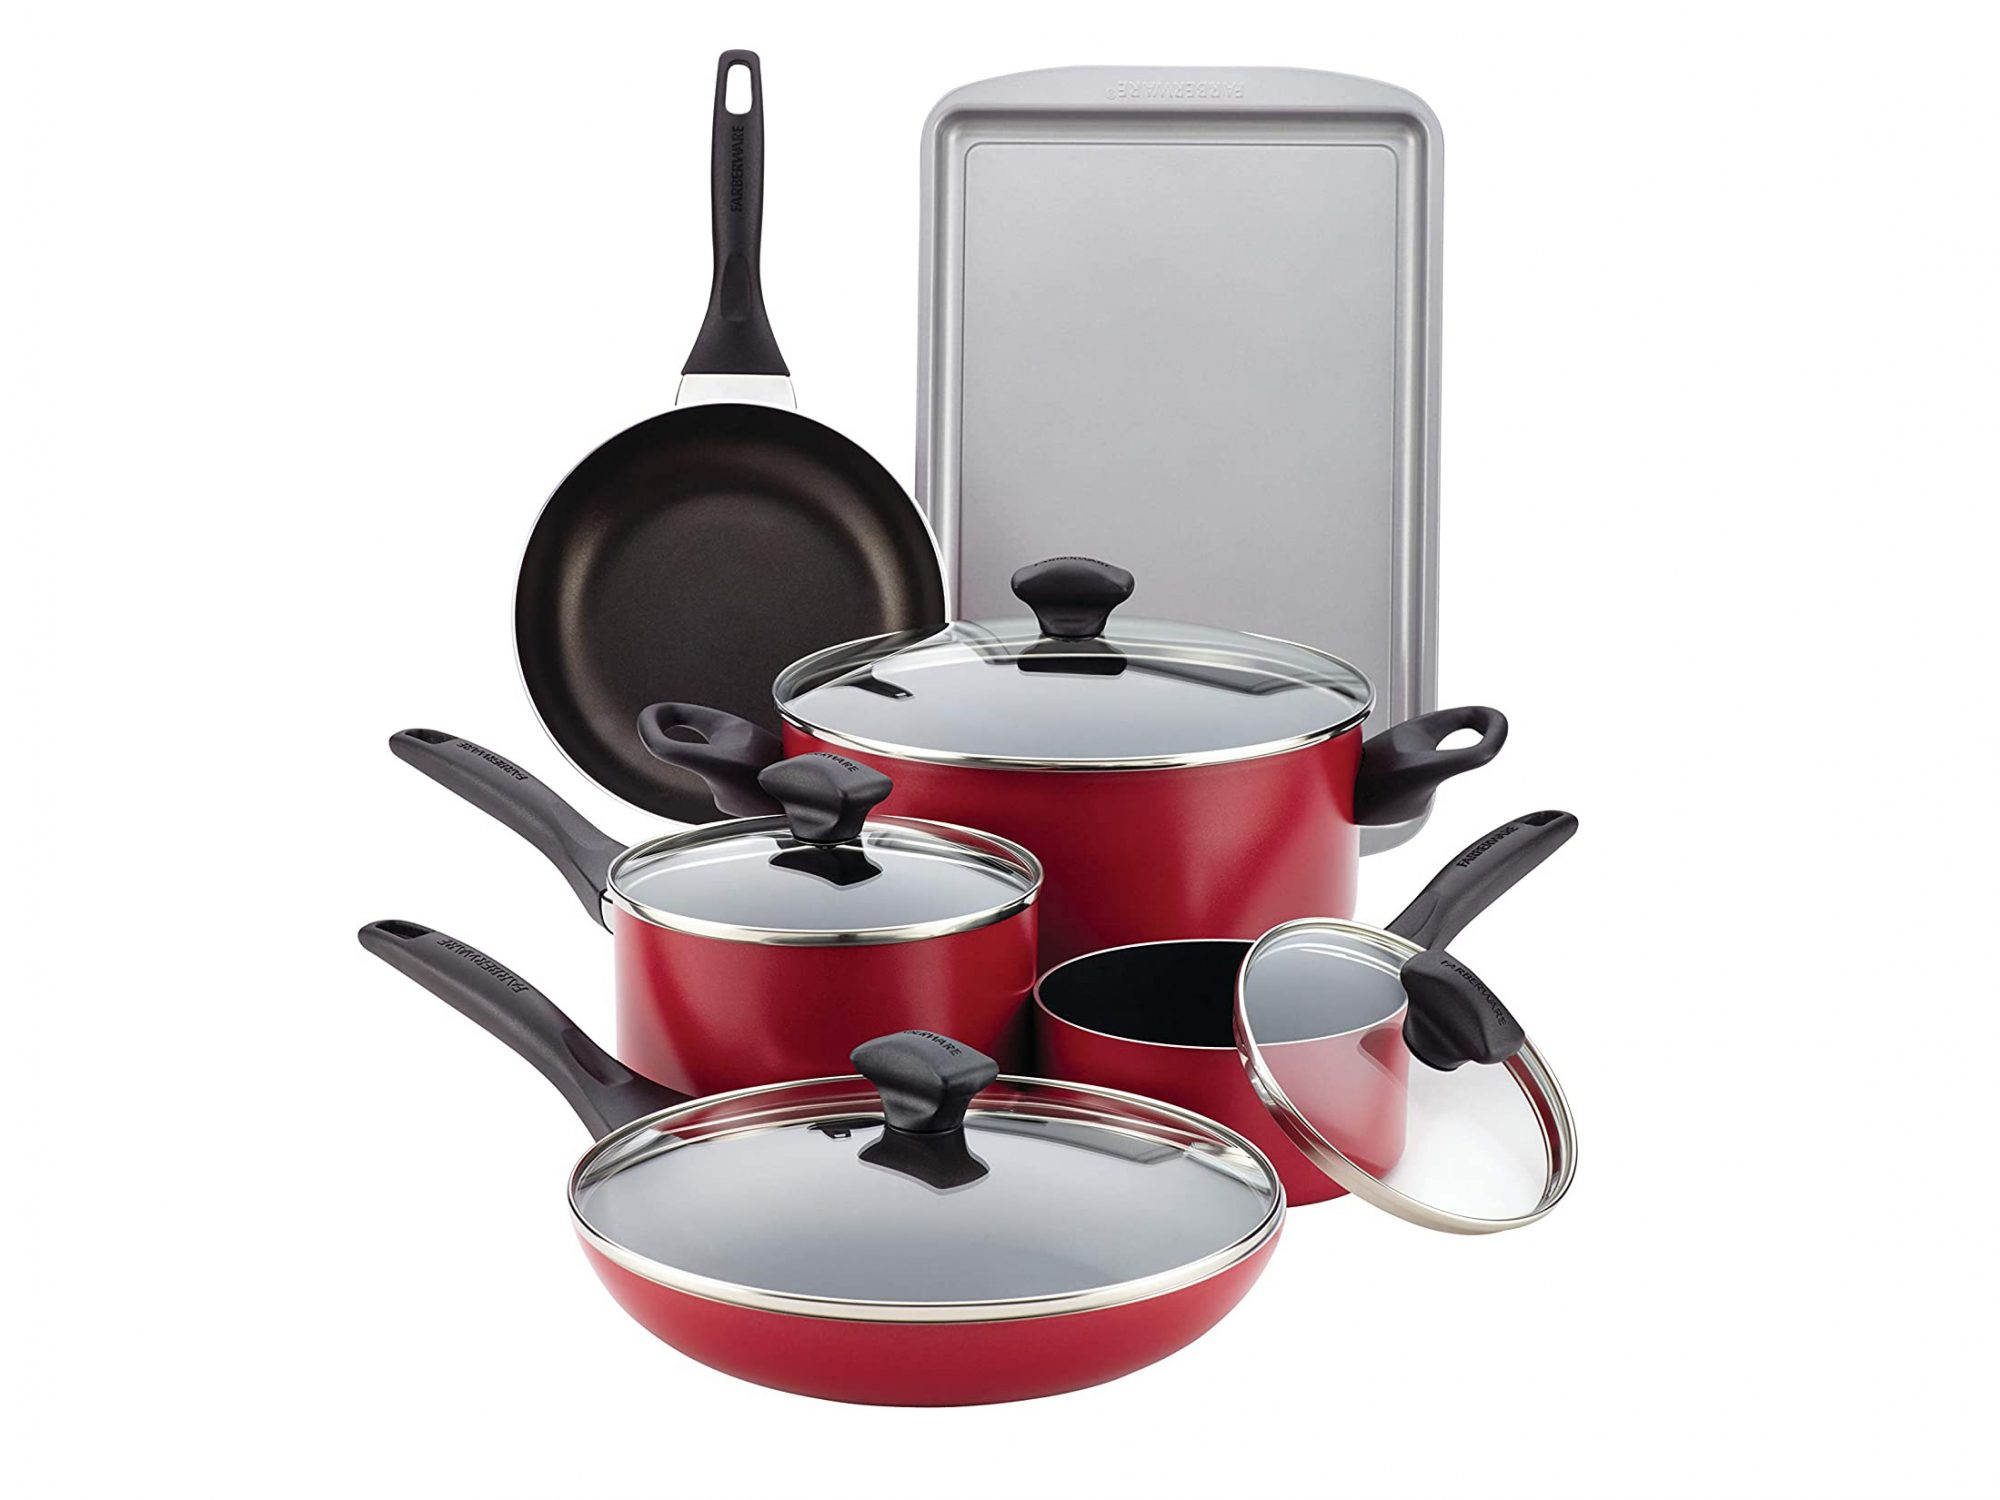 Faberware Cookware Set